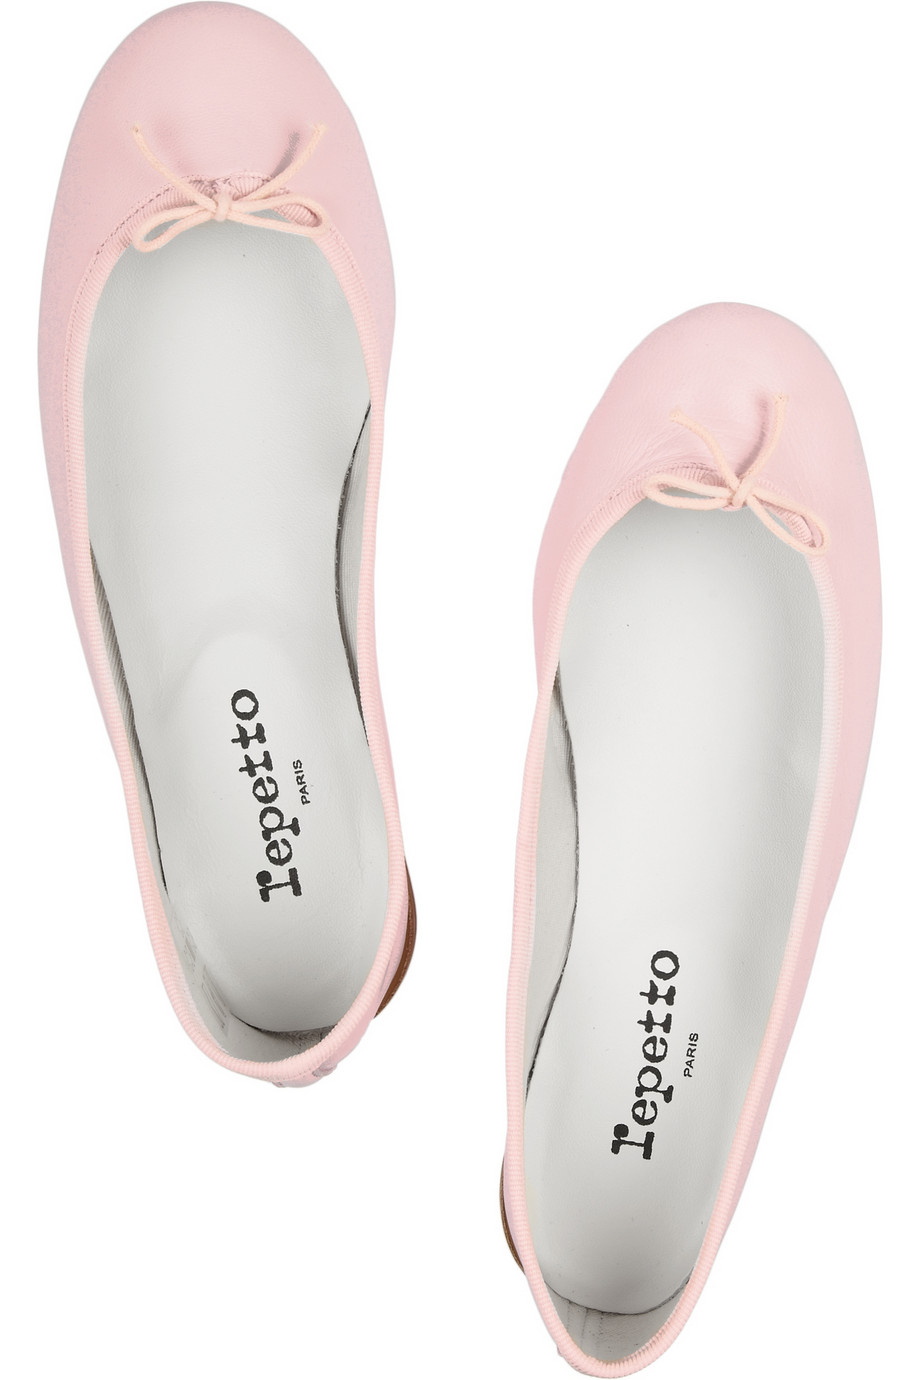 6c44d584ede Repetto Pink The Cendrillon Leather Ballet Flats